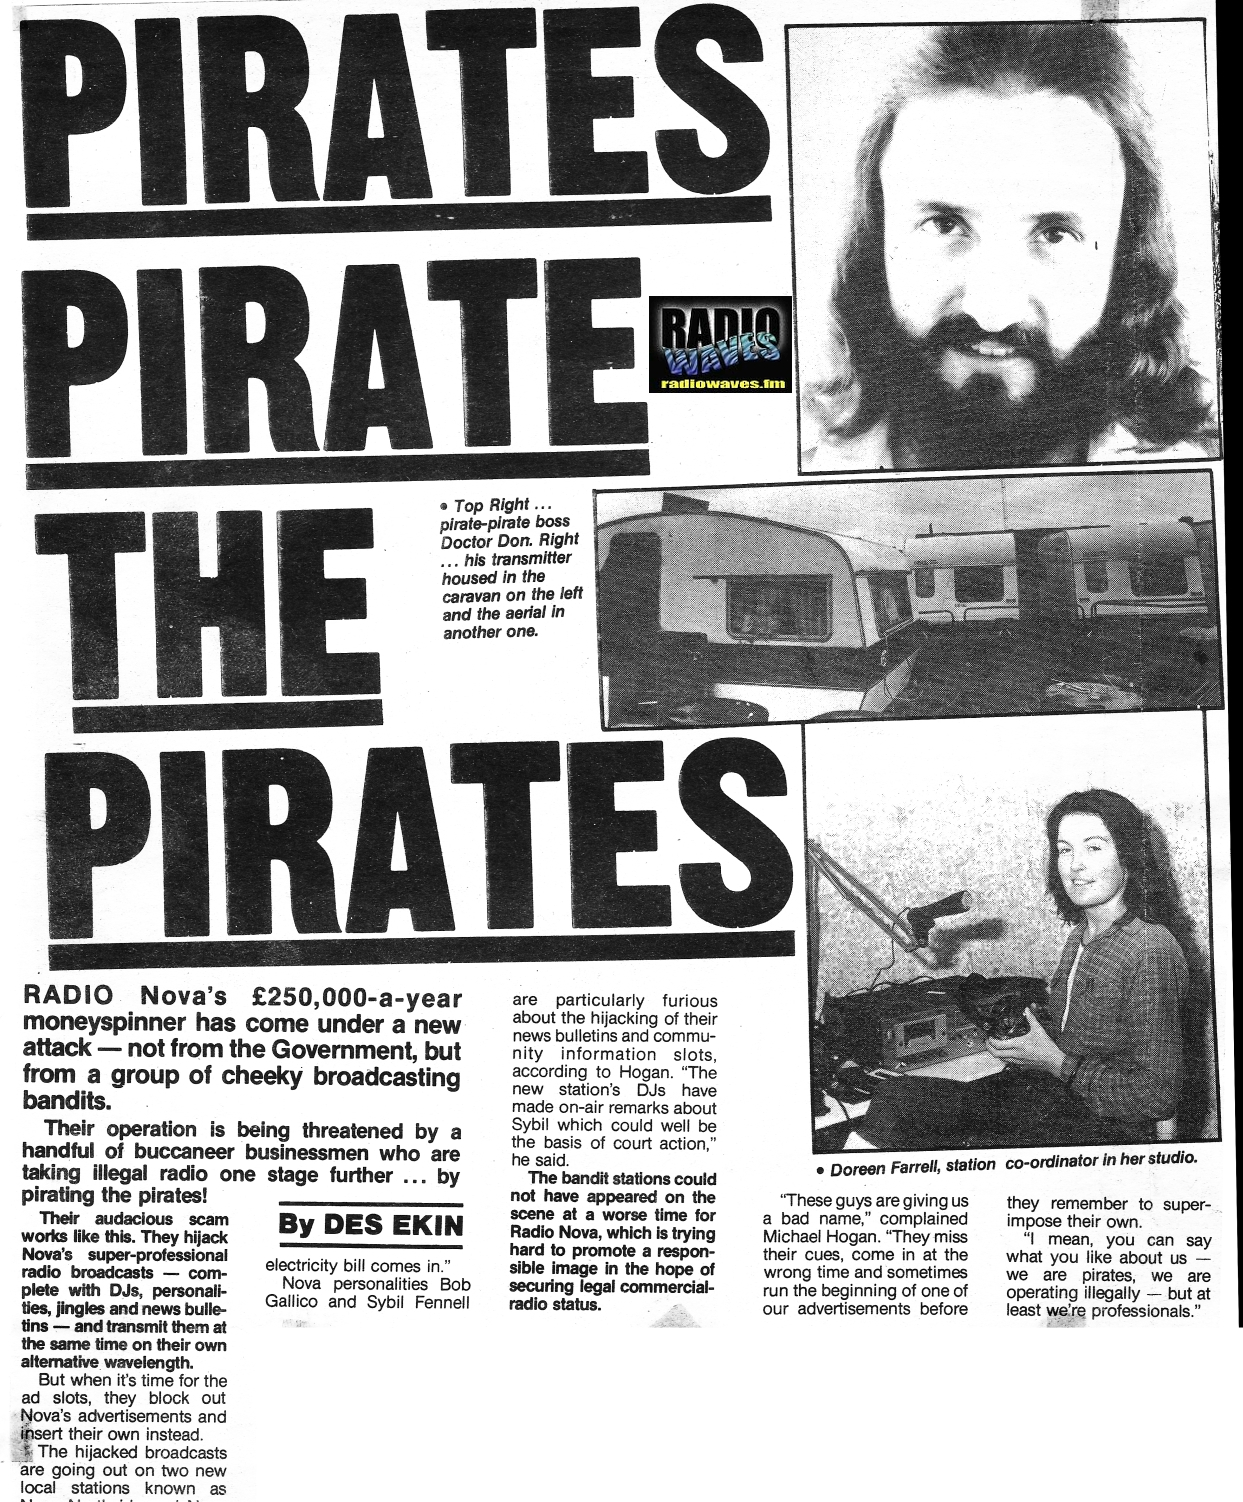 Pirates pirate the pirates was a newspaper headline from the Sunday World dated December 25th 1983